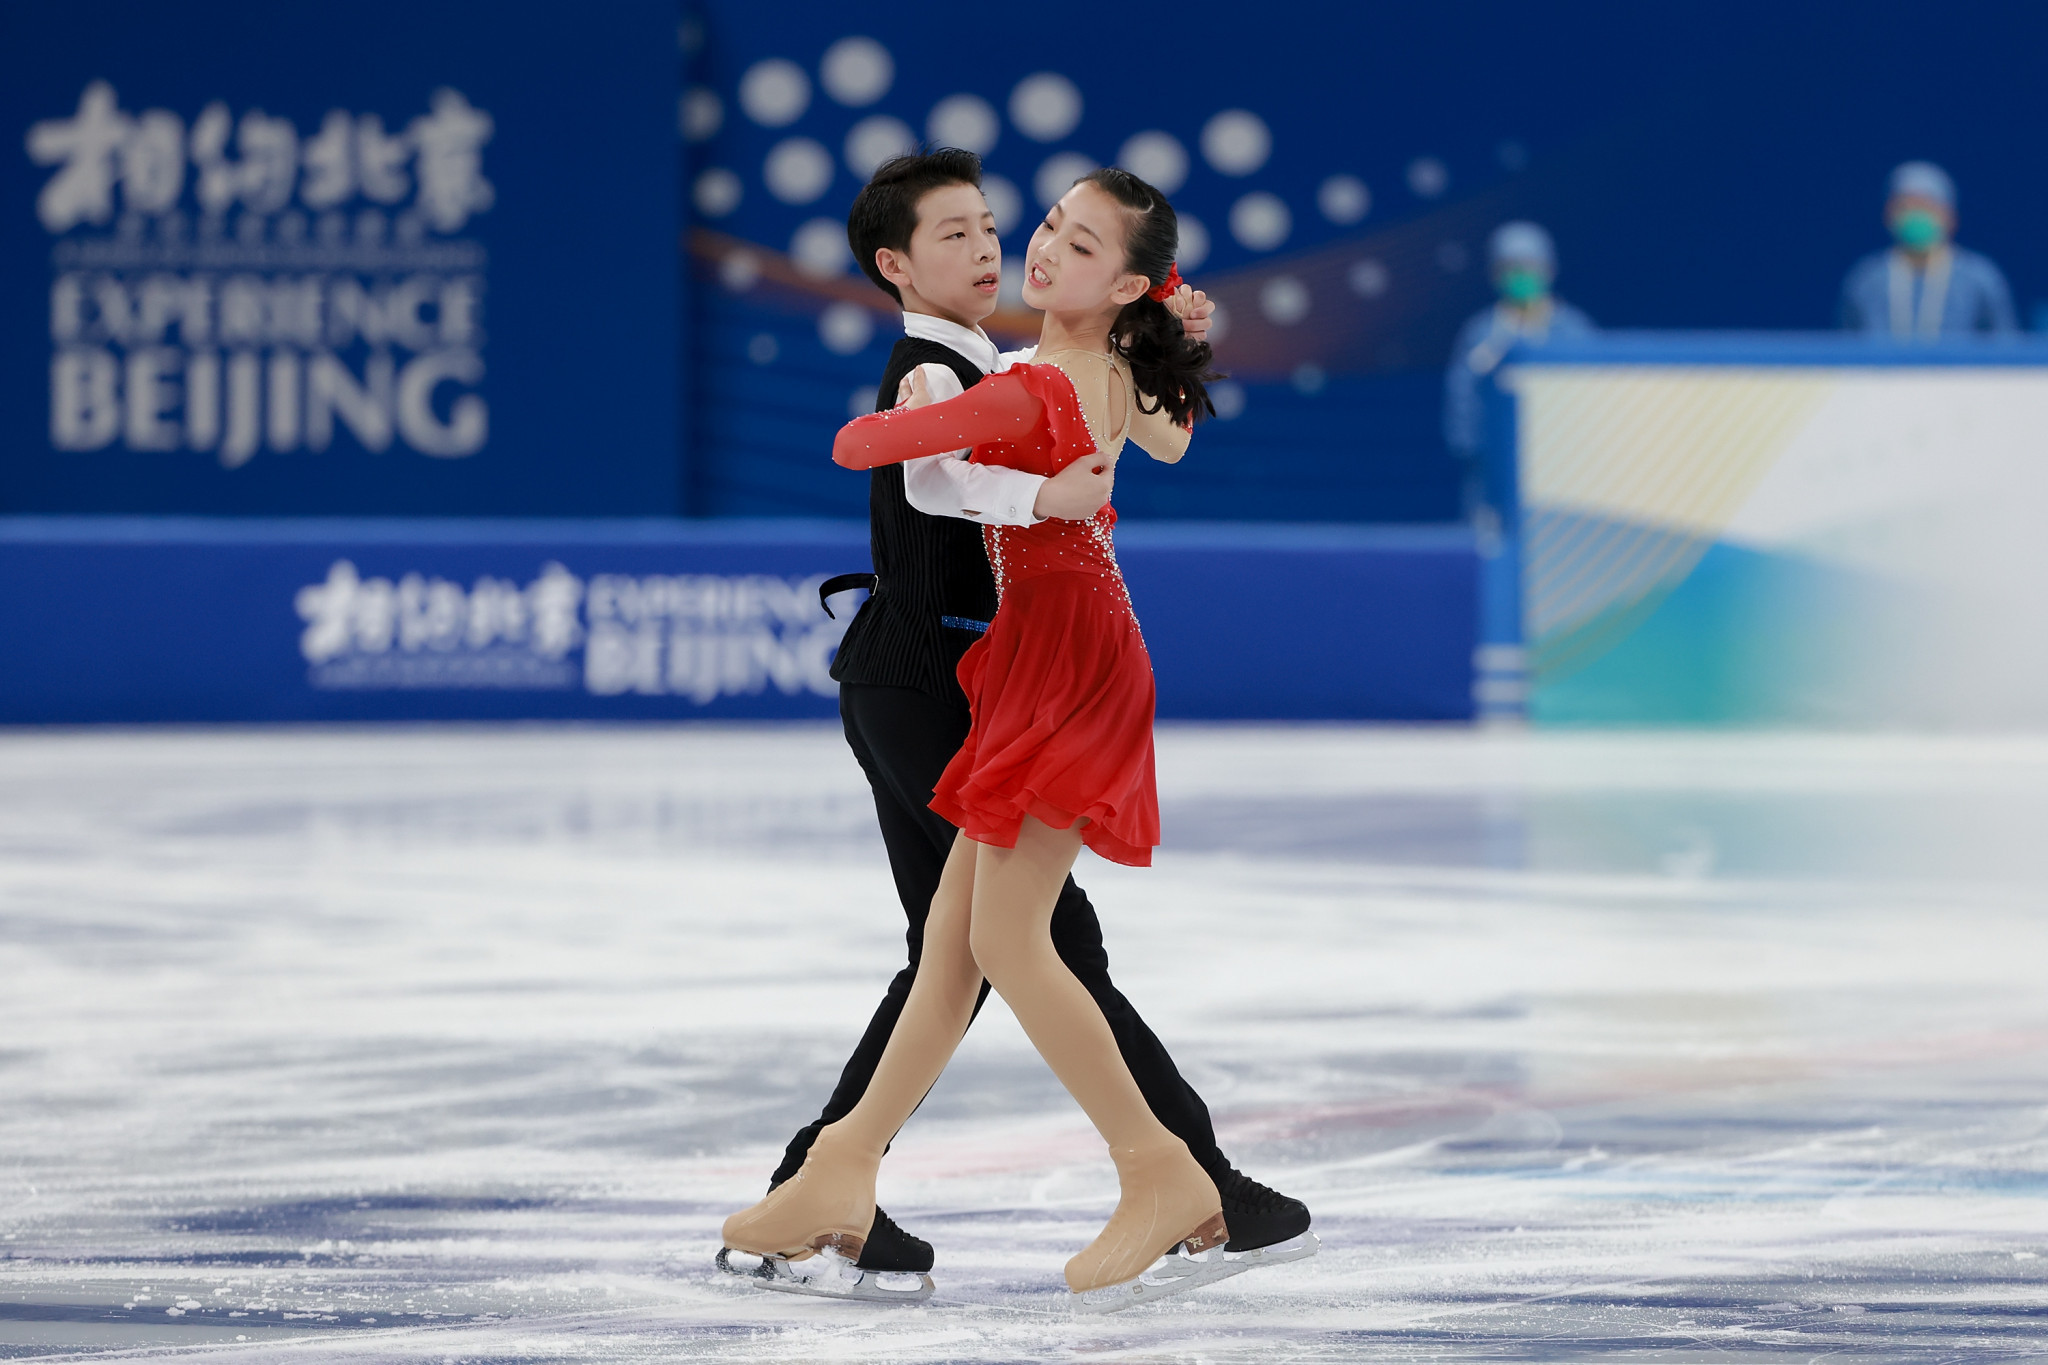 ISU Four Continents Figure Skating Championships 2022 moved from China to Estonia